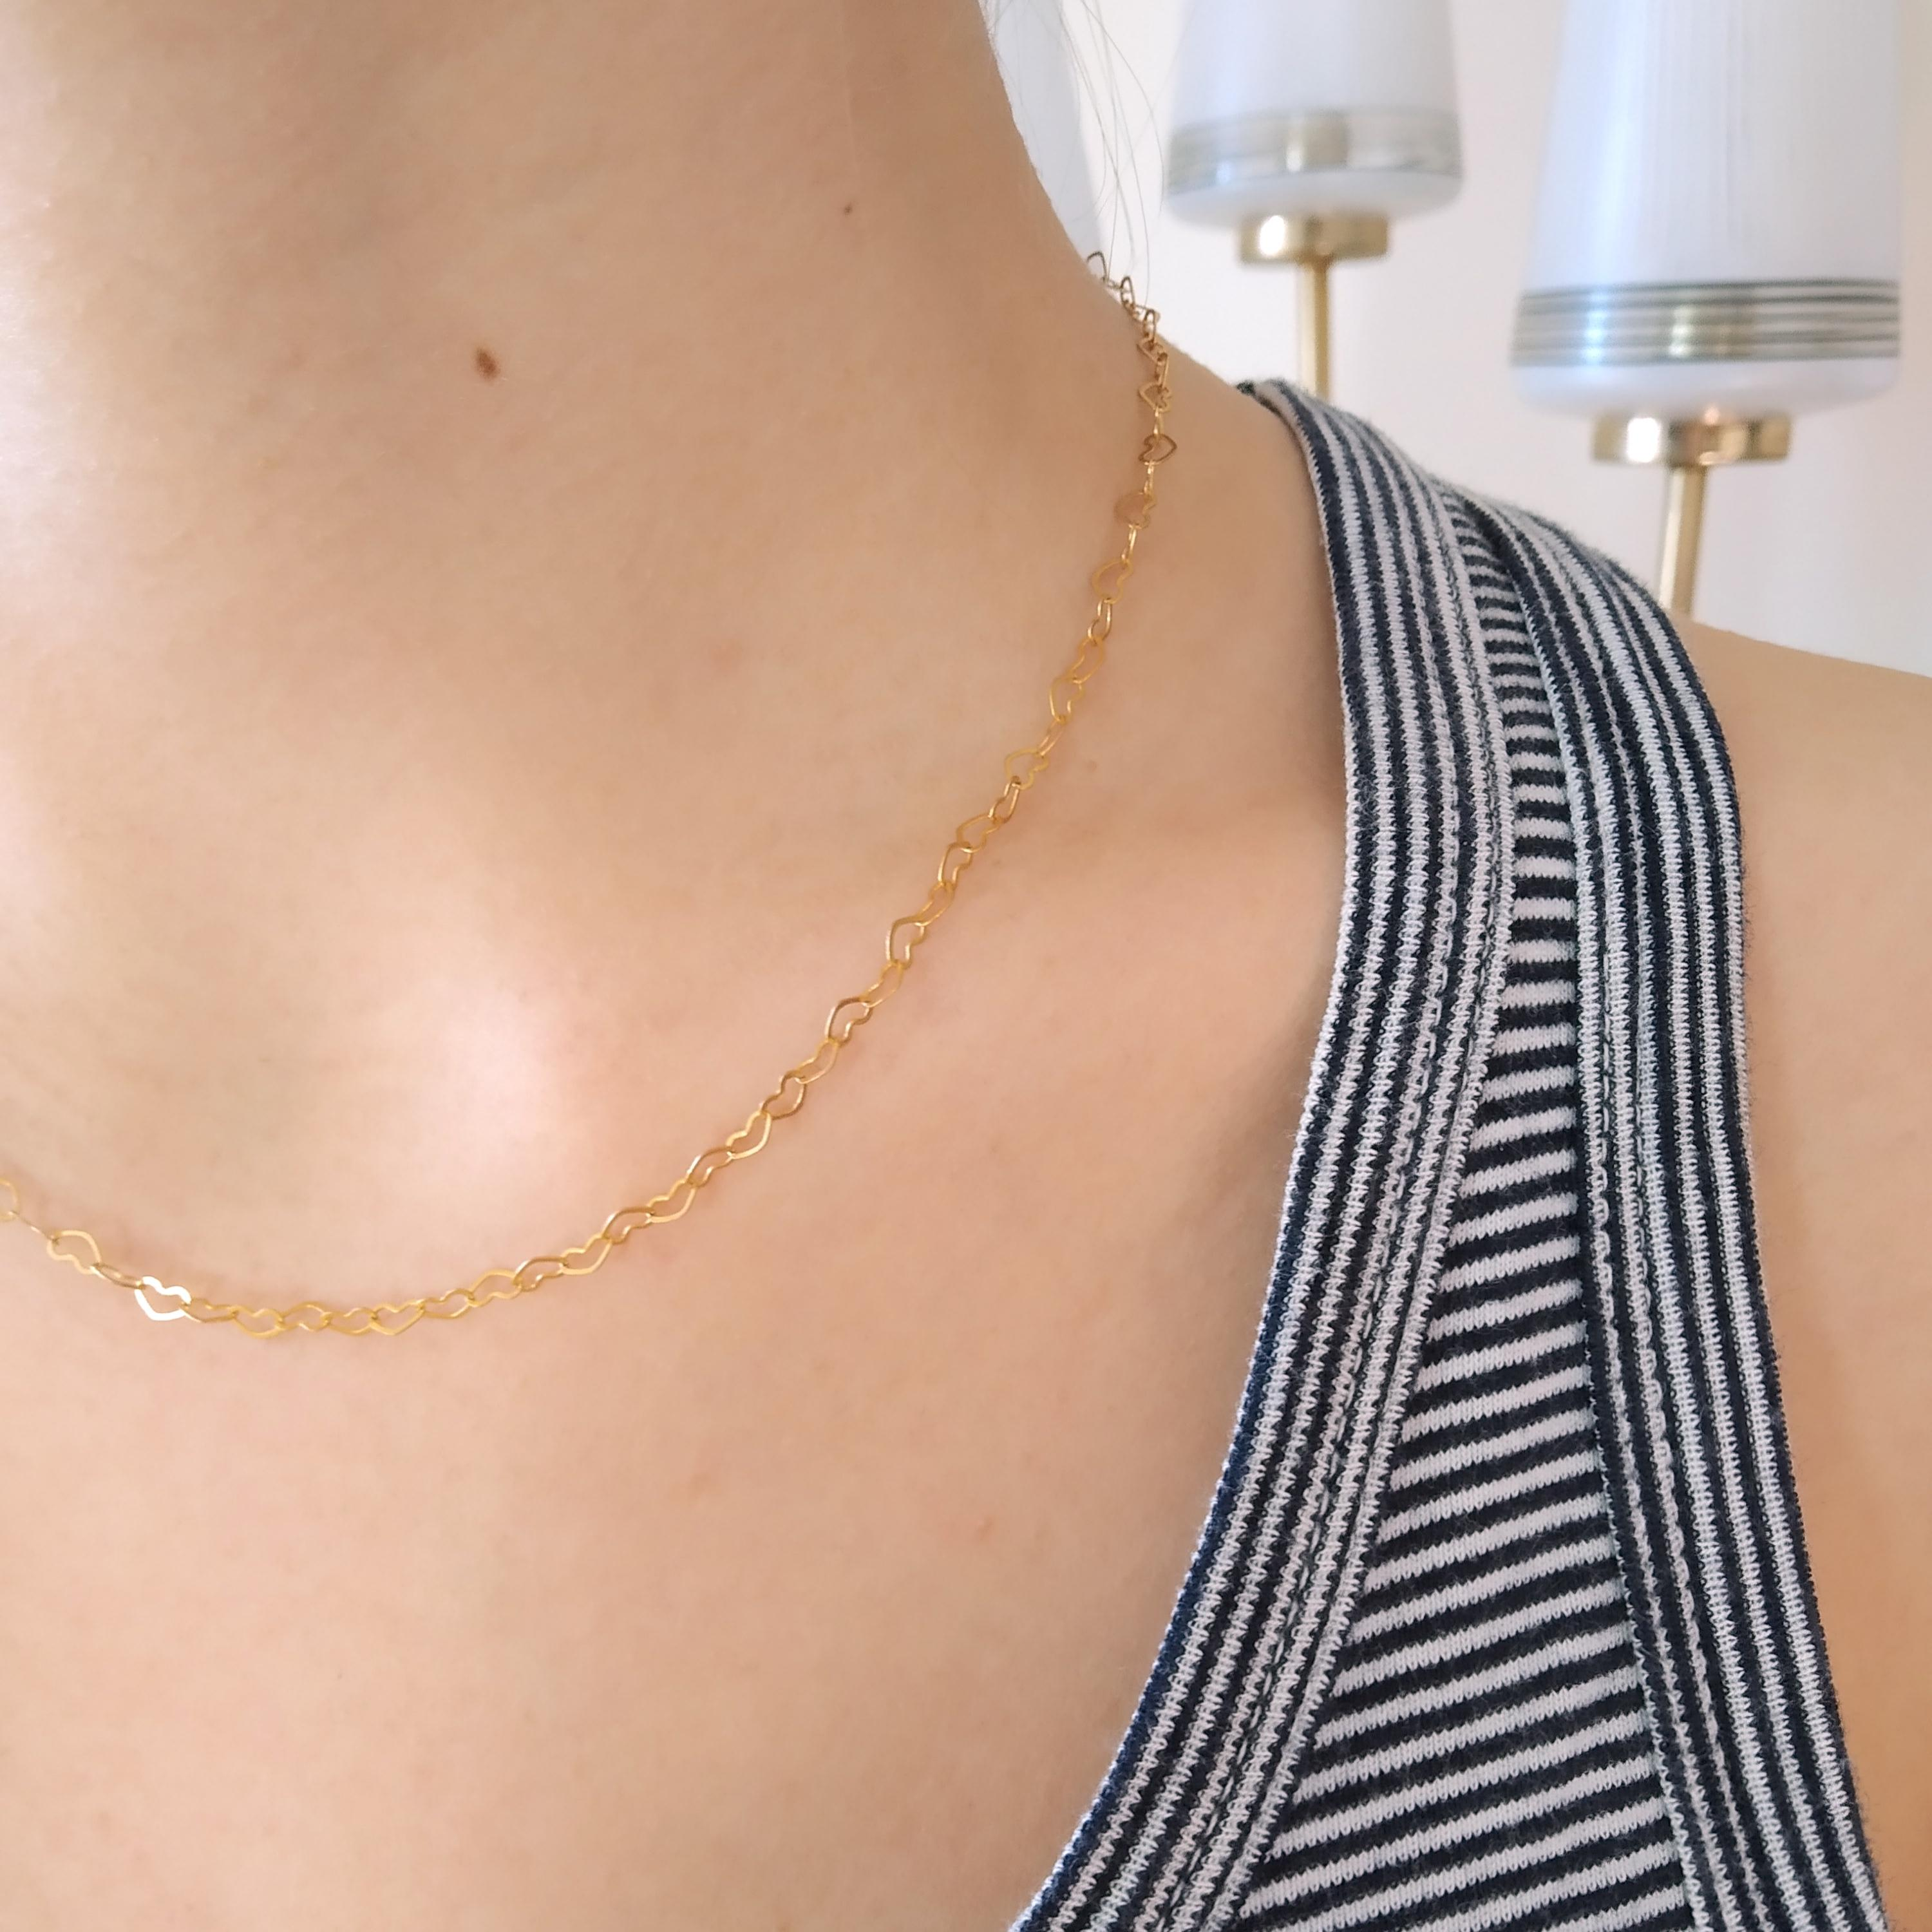 collier_romance_coeur_amour_dore_or_fin_roulotte_mannequin